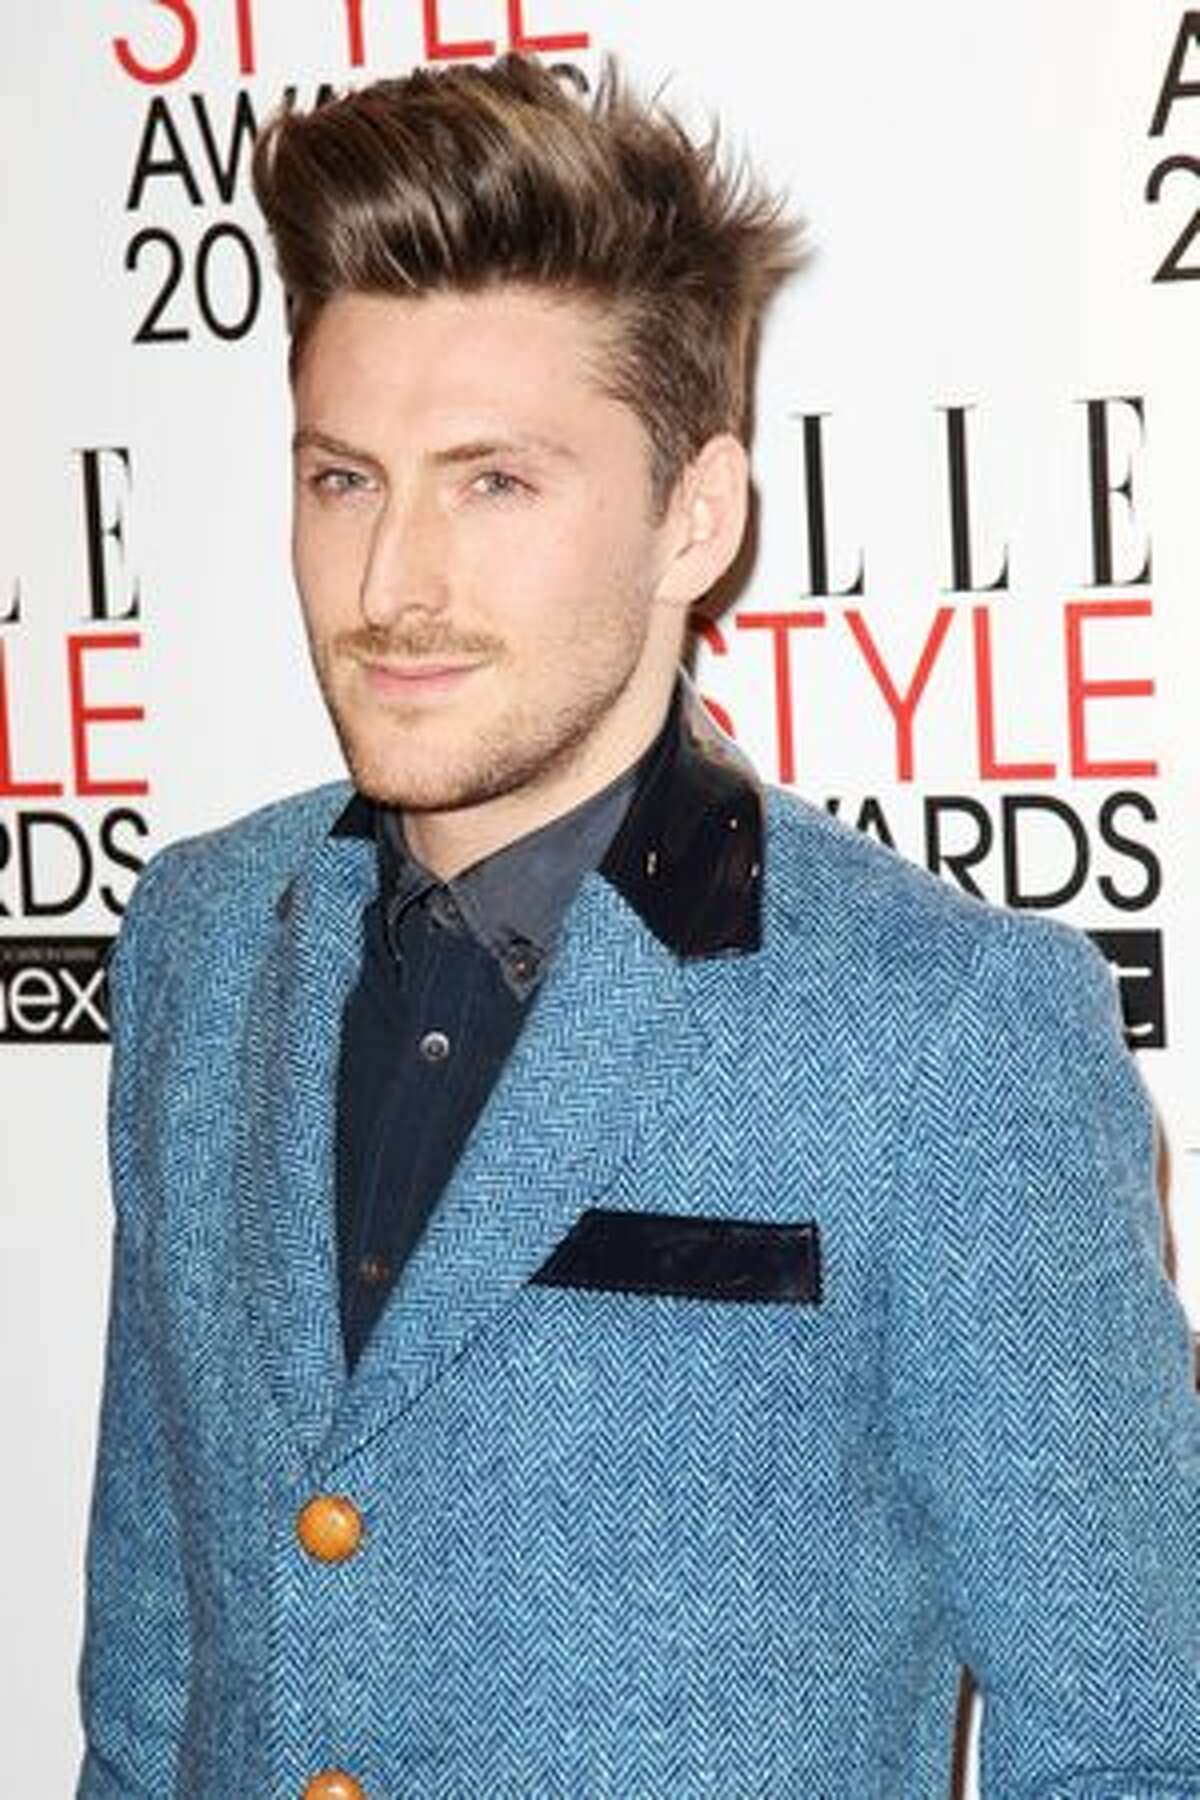 Henry Holland arrives at the ELLE Style Awards 2011 held at The Grand Connaught Rooms in London, England.